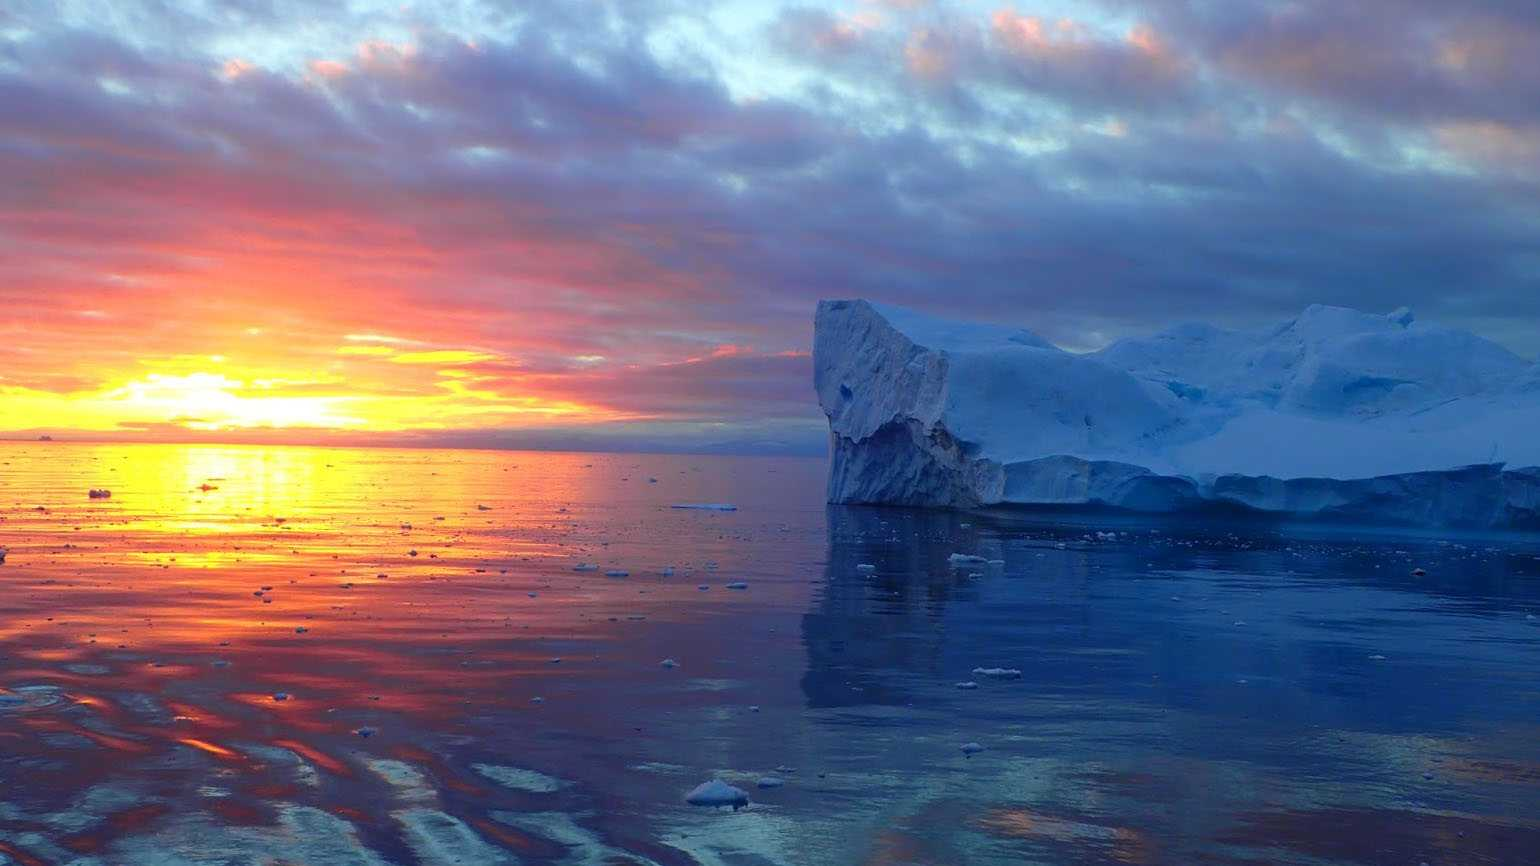 A brilliant sunset in the South Pole.